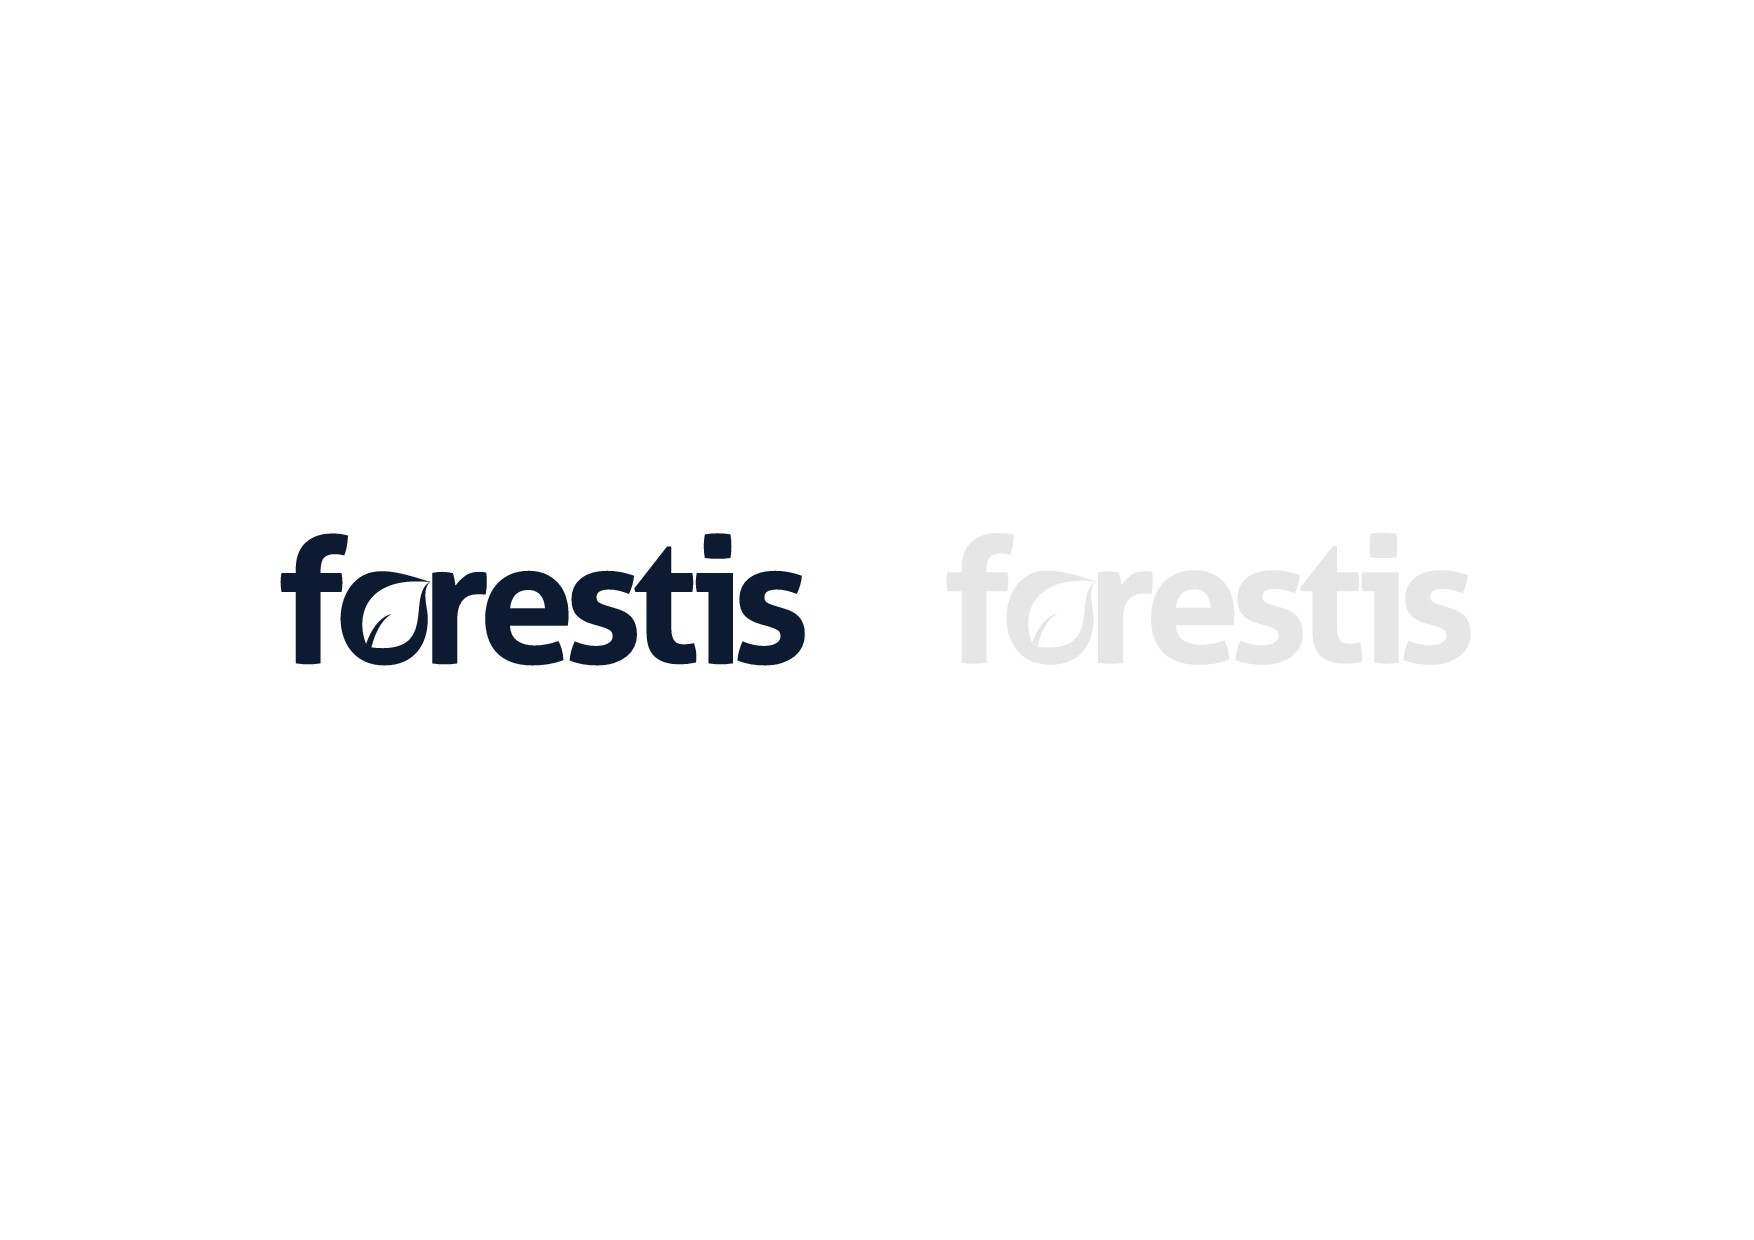 Create a modern logo for Forestis - natural products